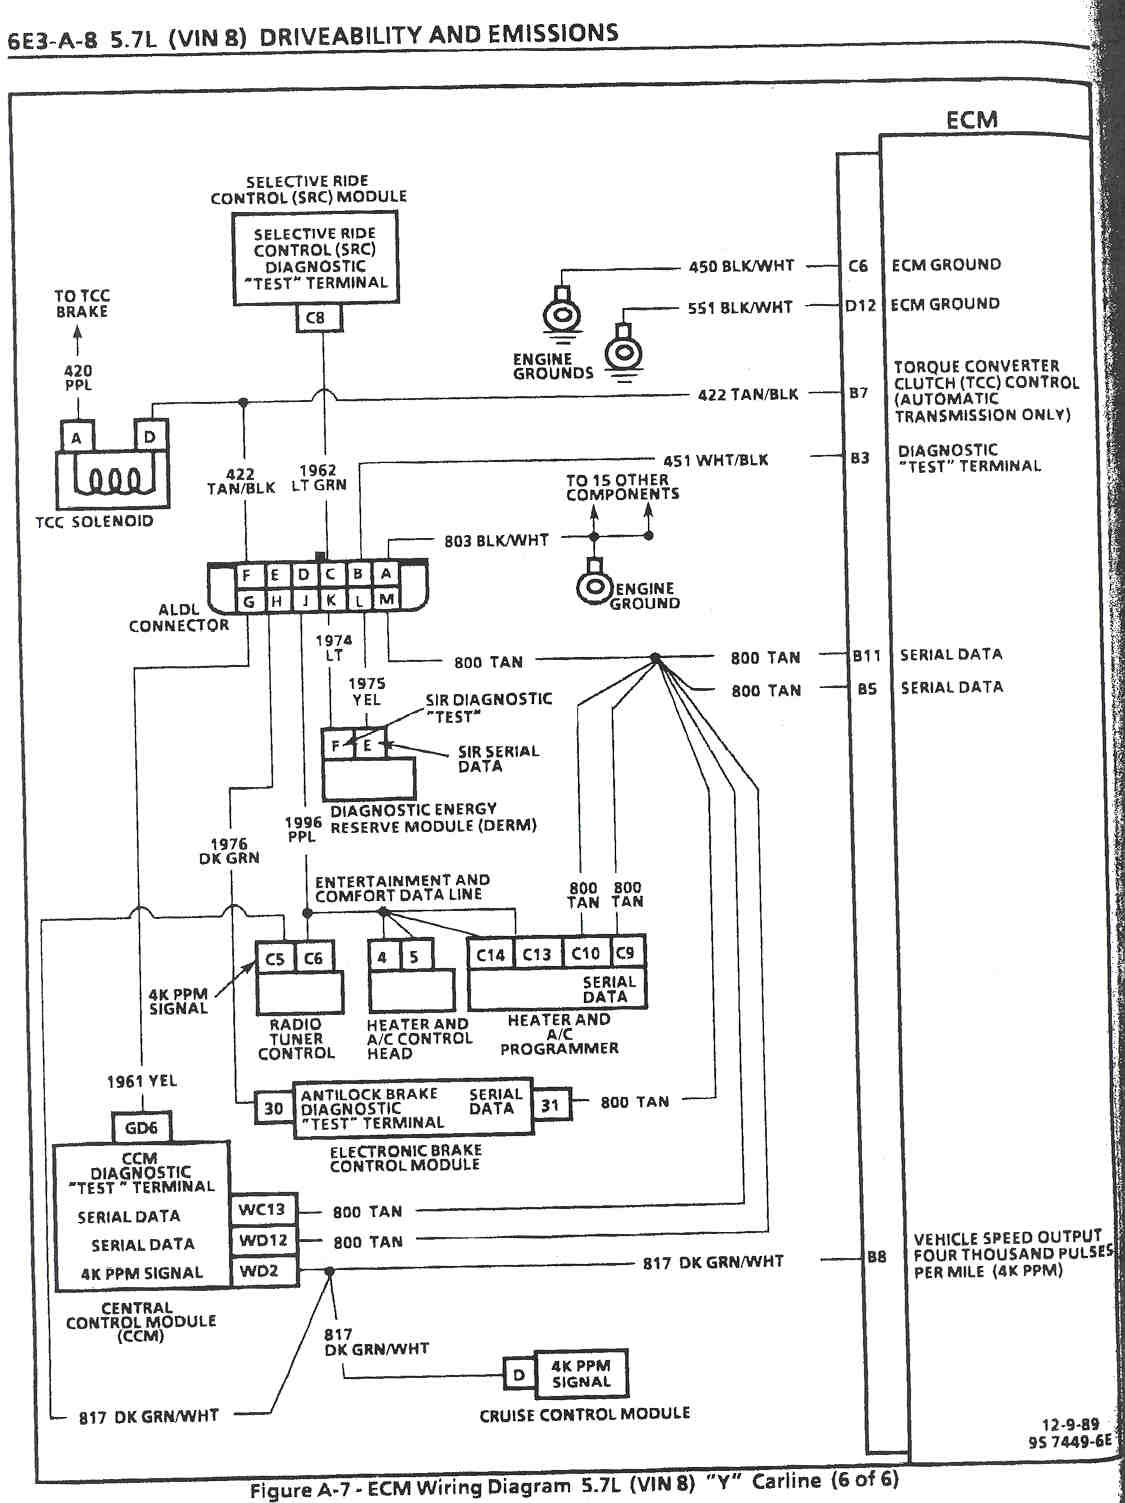 holley dominator efi wiring diagram split ac hd index of gearhead